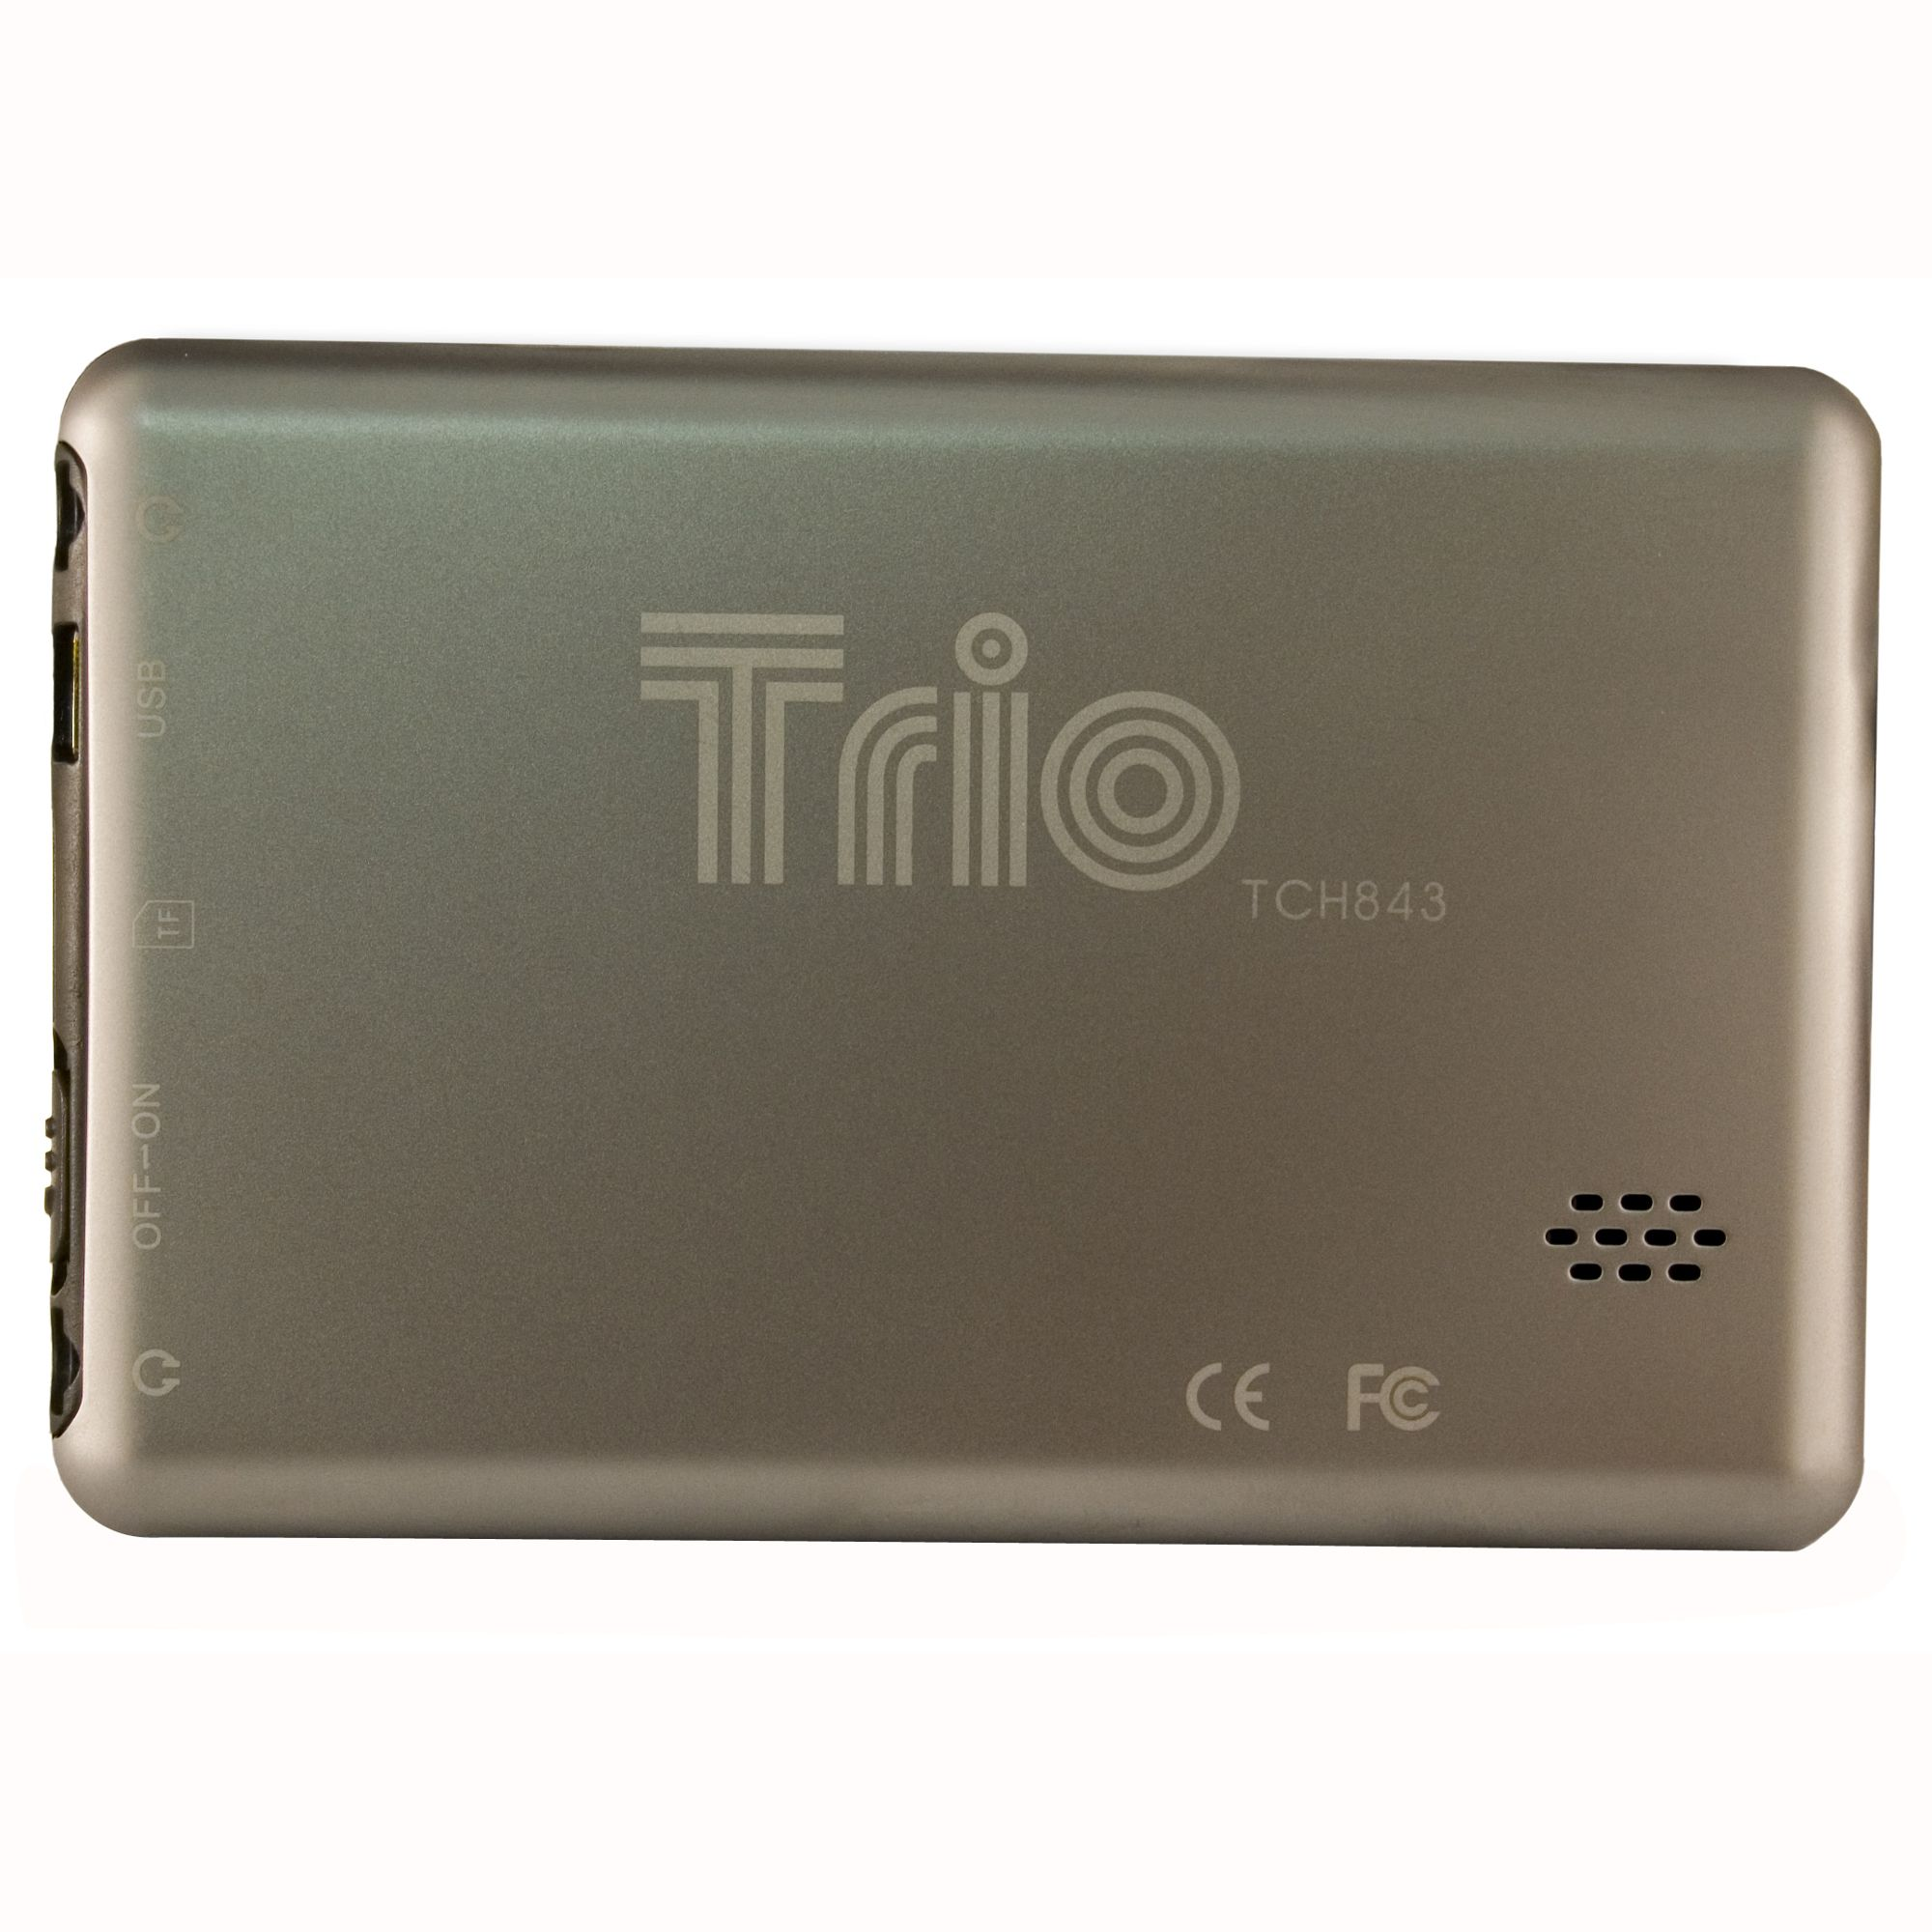 Mach Speed Trio 8GB 4.3 in. Touchscreen Display Video MP3 Player